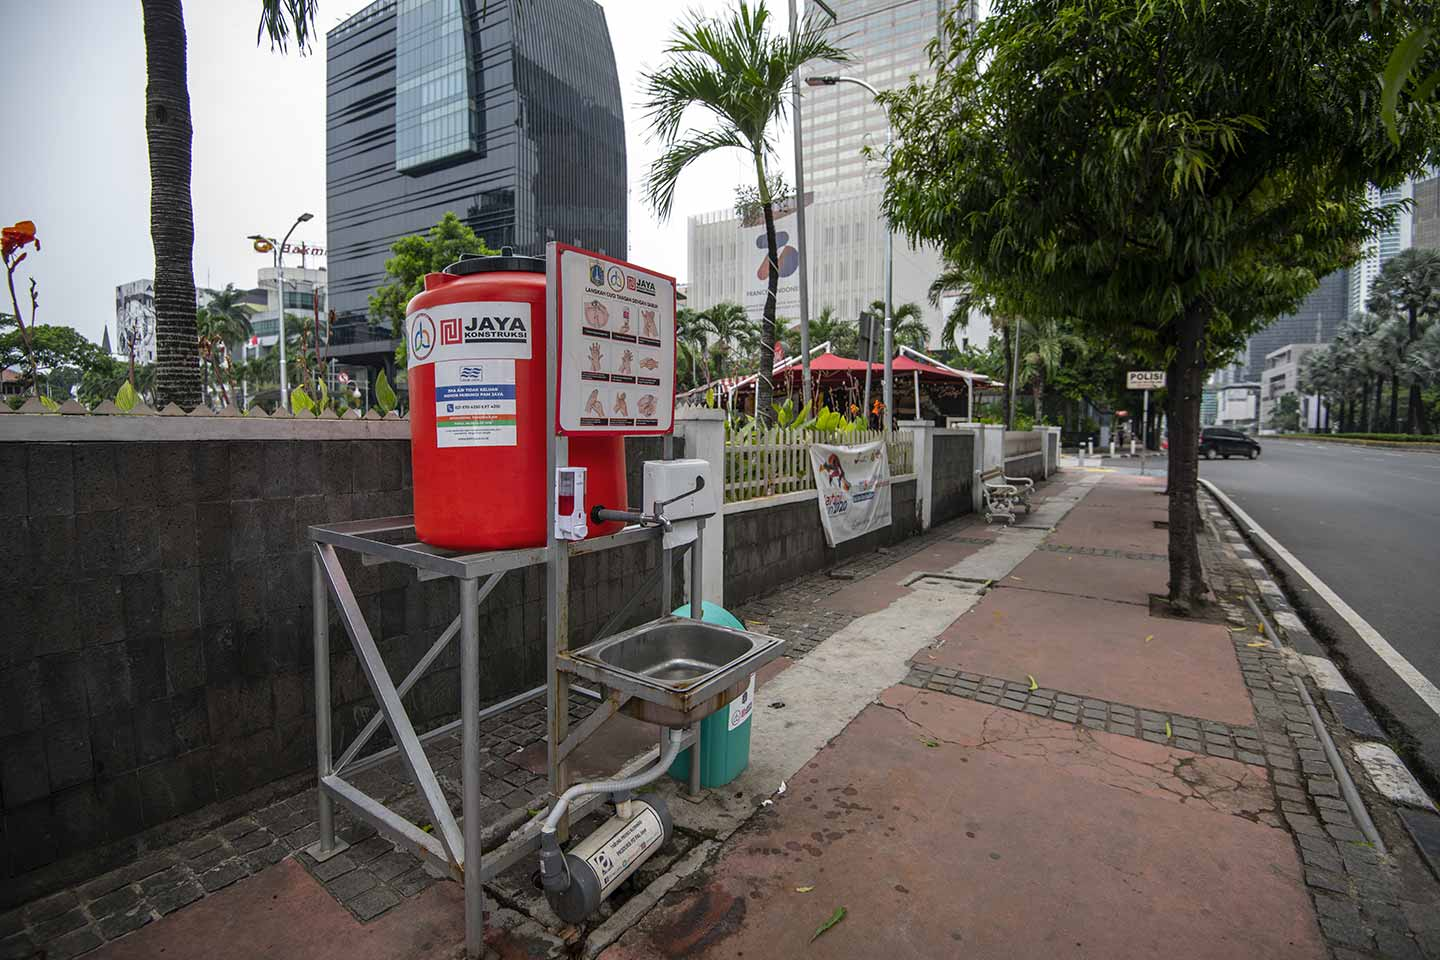 The Jakarta Provincial Government provided a washing area for people on the sidewalk during the Covid-19 outbreak in Central Jakarta, Indonesia in April, 2020.  Credit: UNICEF/Arimacs Wilander